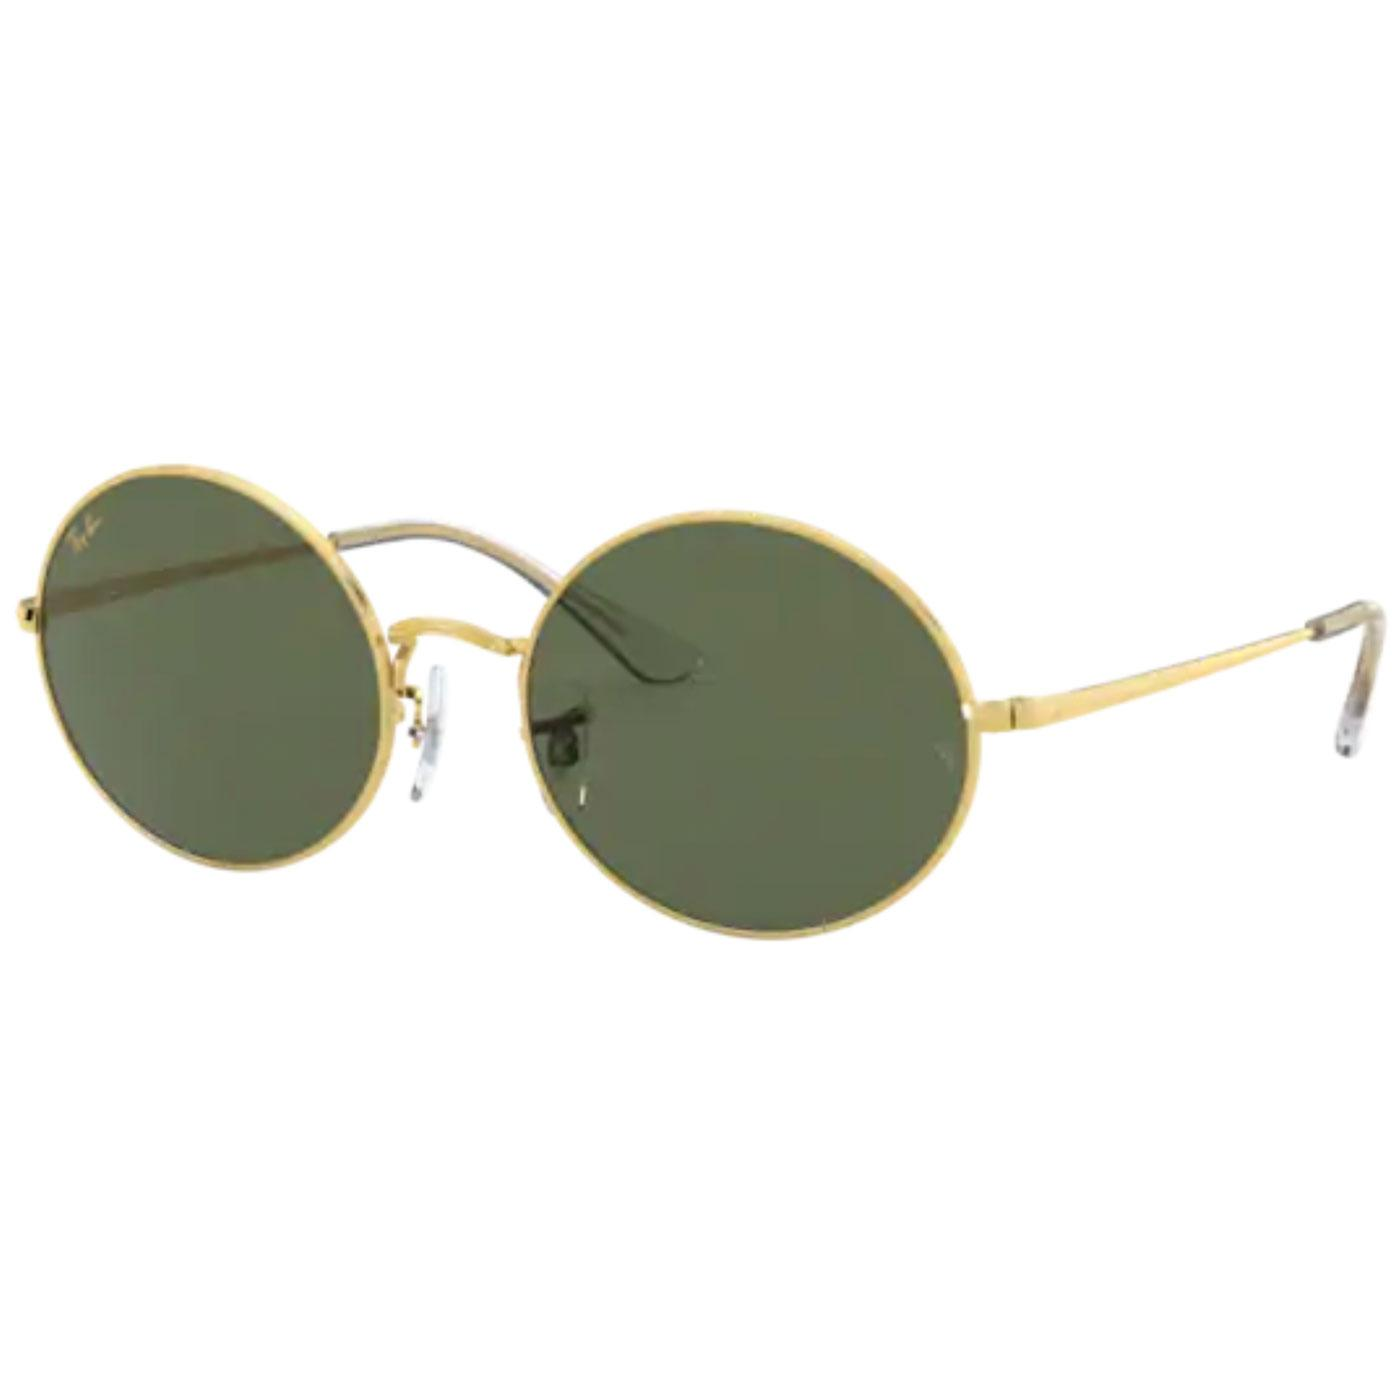 RAY-BAN RB1970 Retro Oval Sunglasses (Legend Gold)